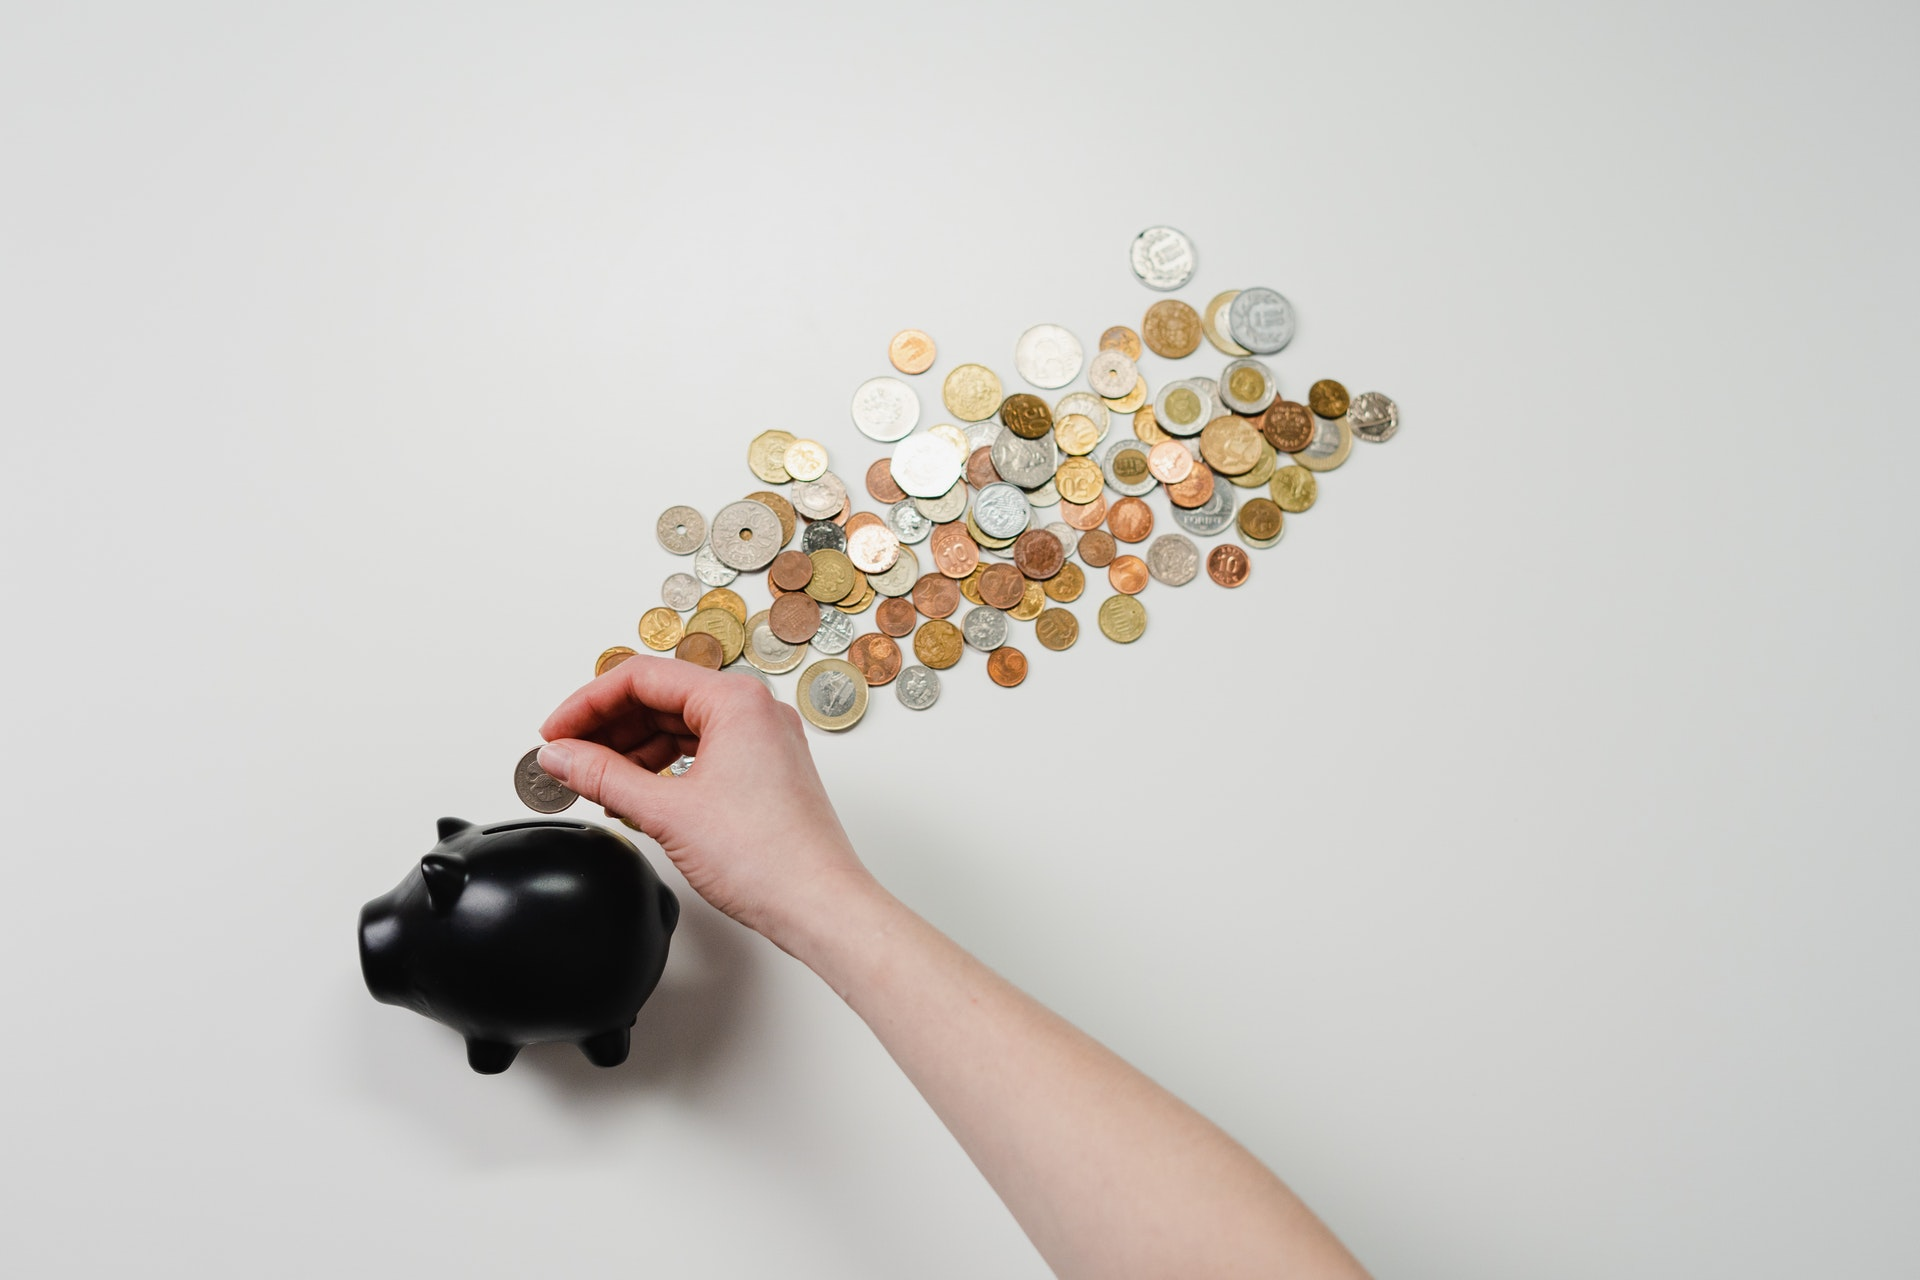 person inserting coin into black piggy bank with coins scattered around